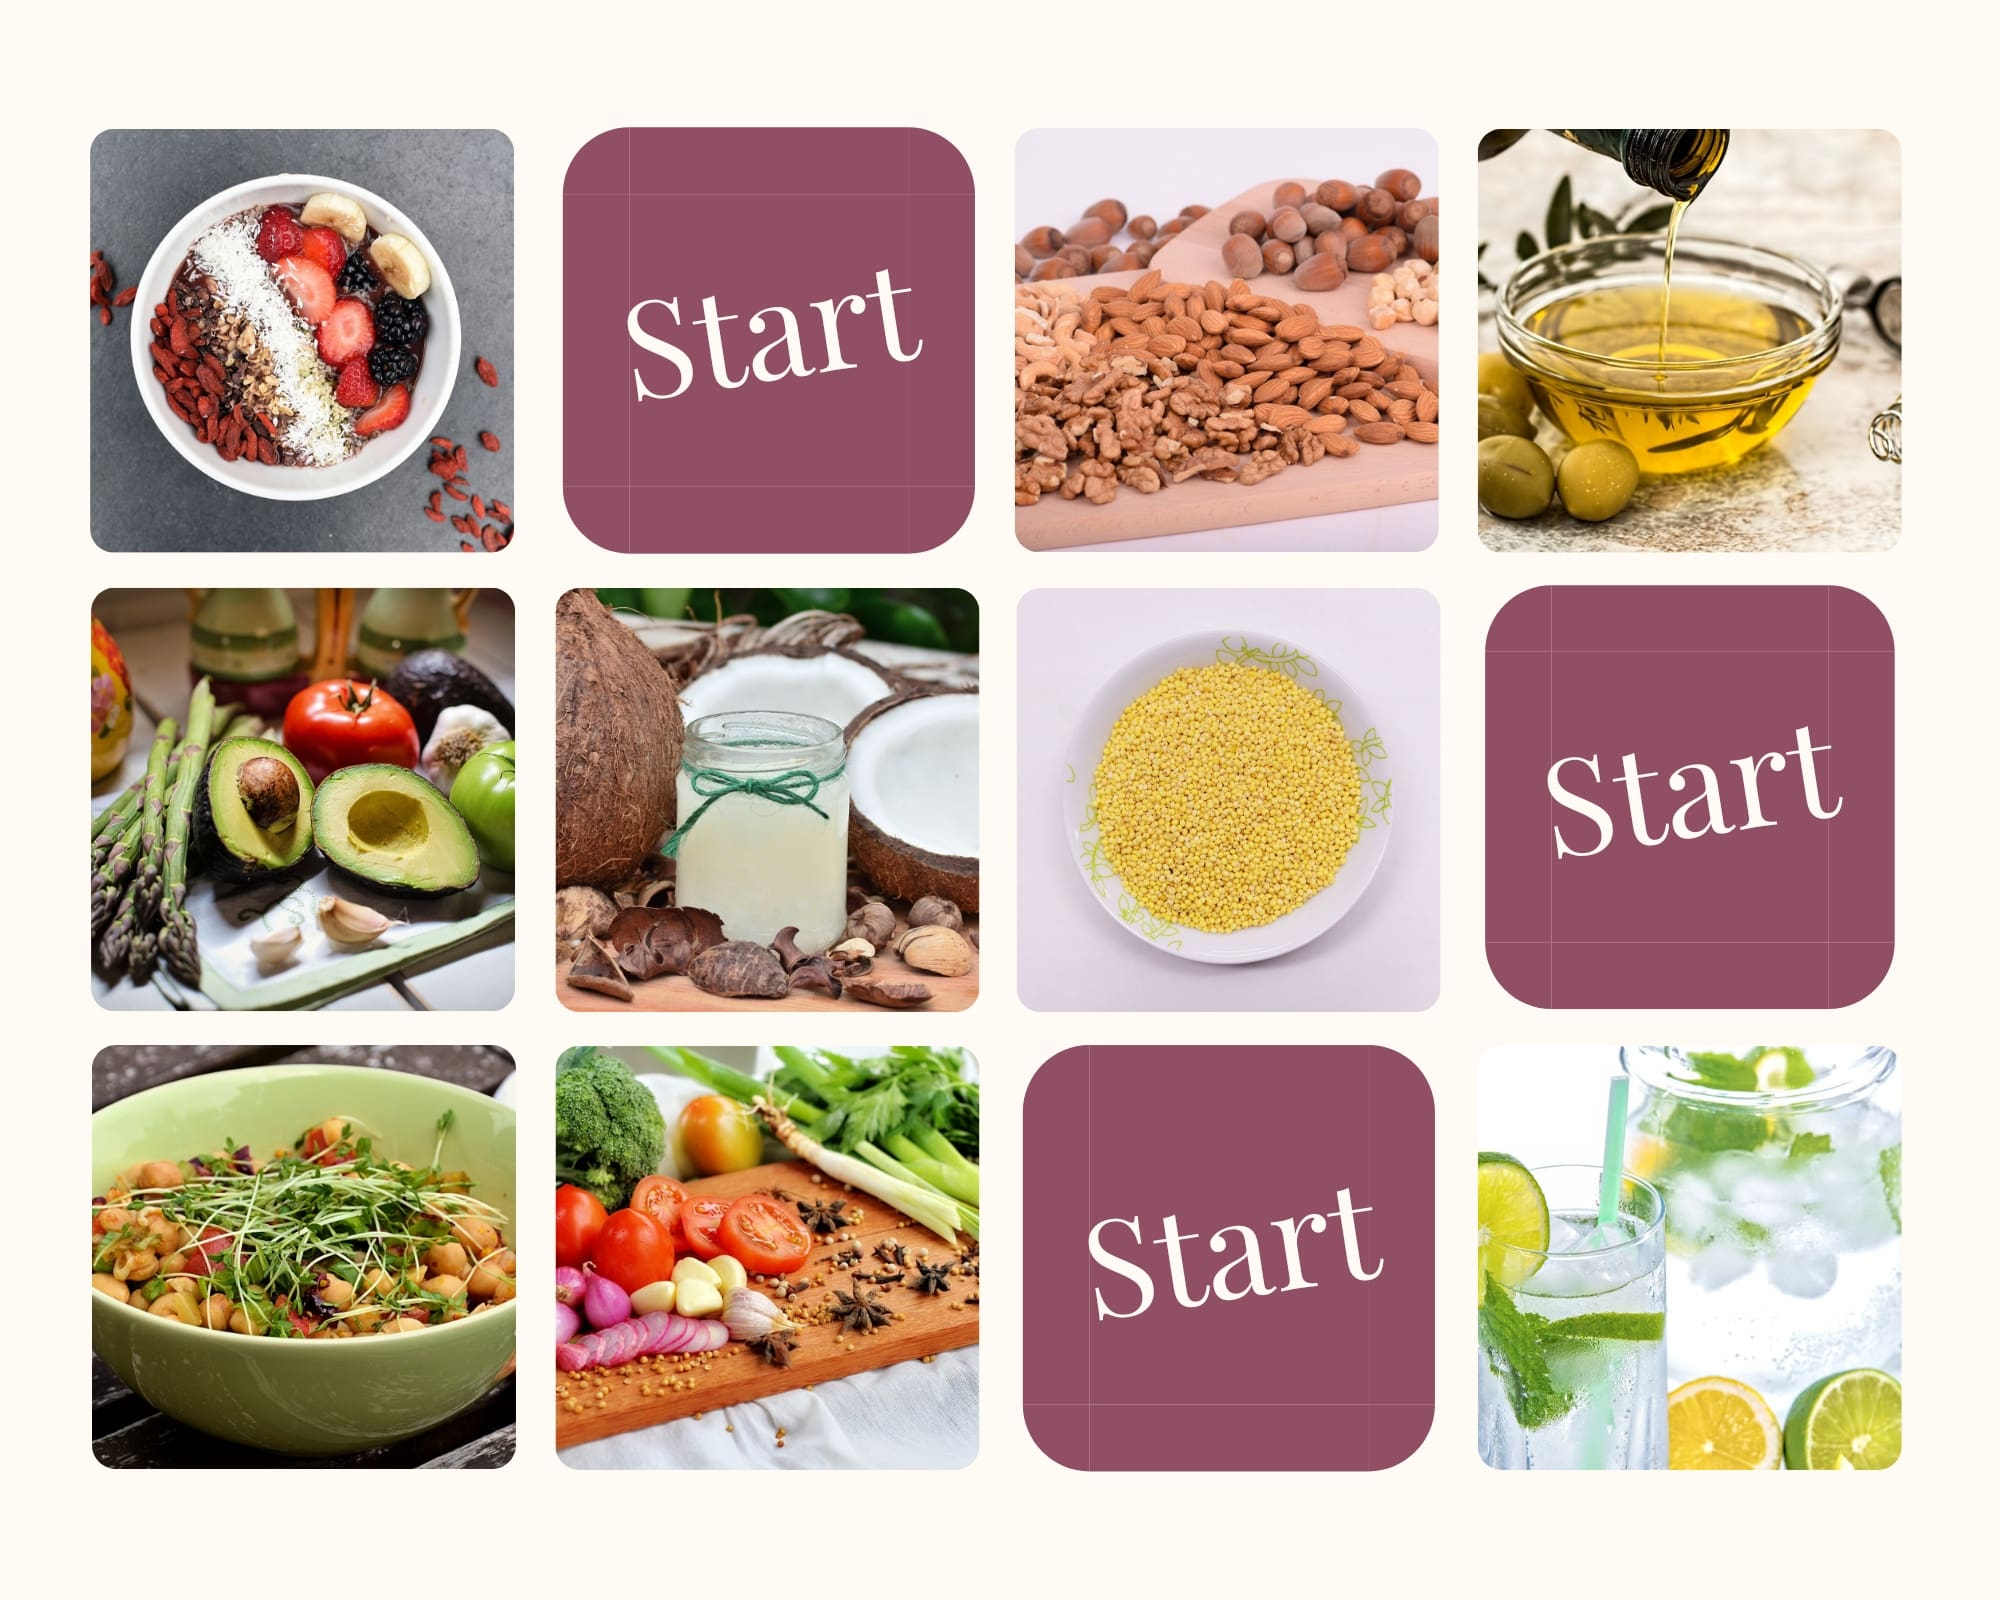 start to eat this products millet vegetables coconut oil oil from olives shungite water